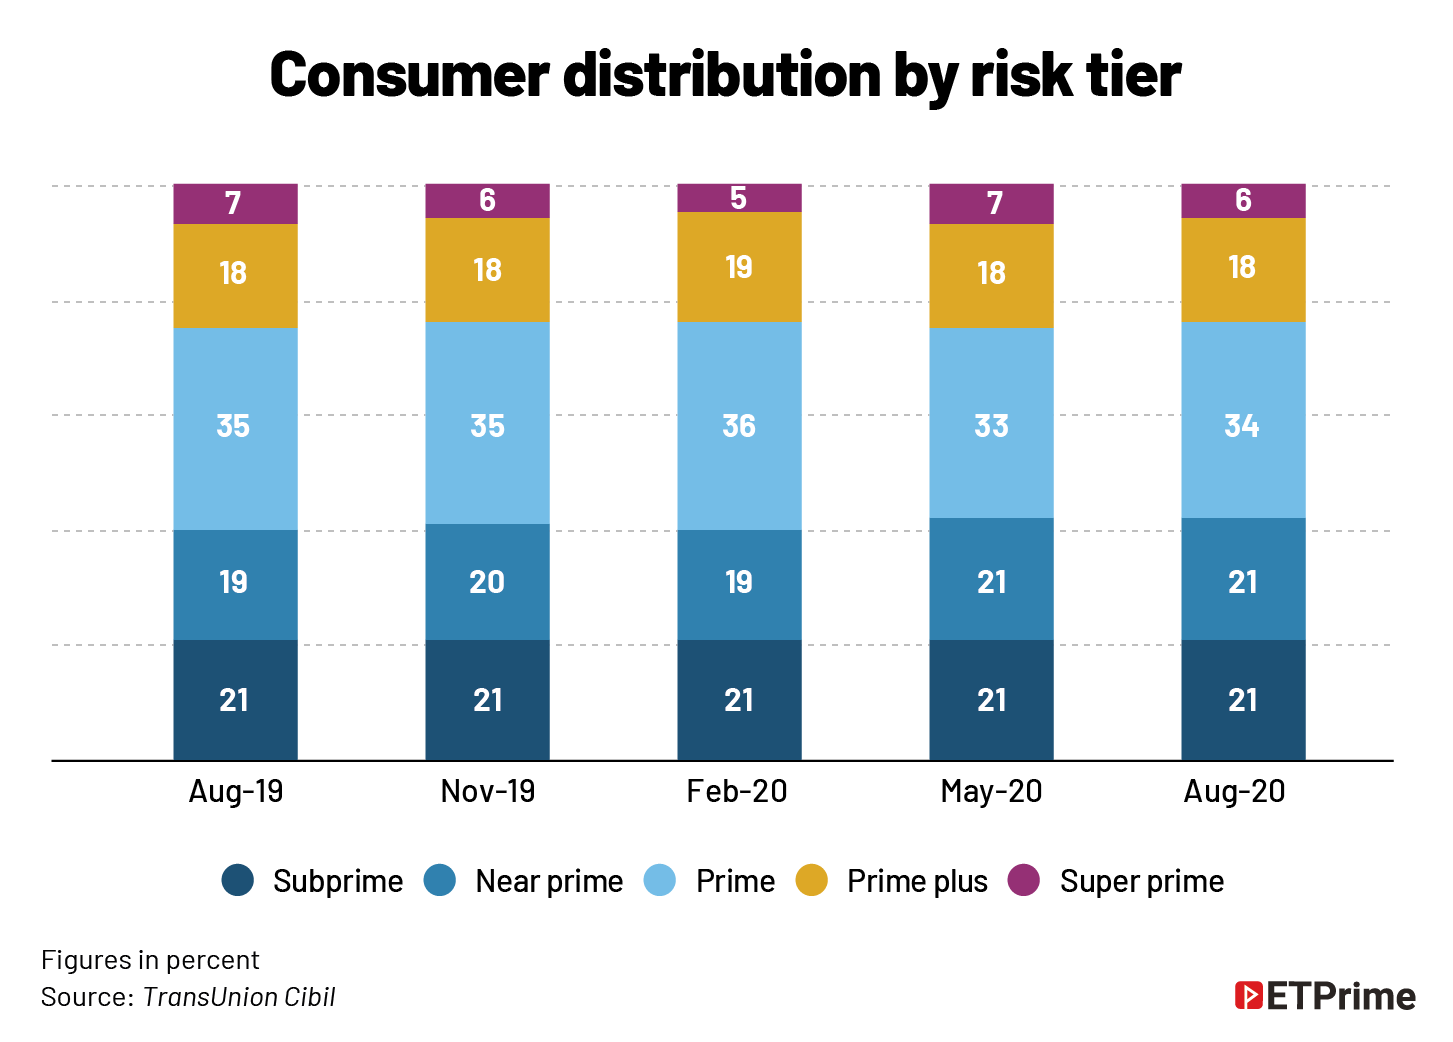 Consumer distribution by risk tier@2